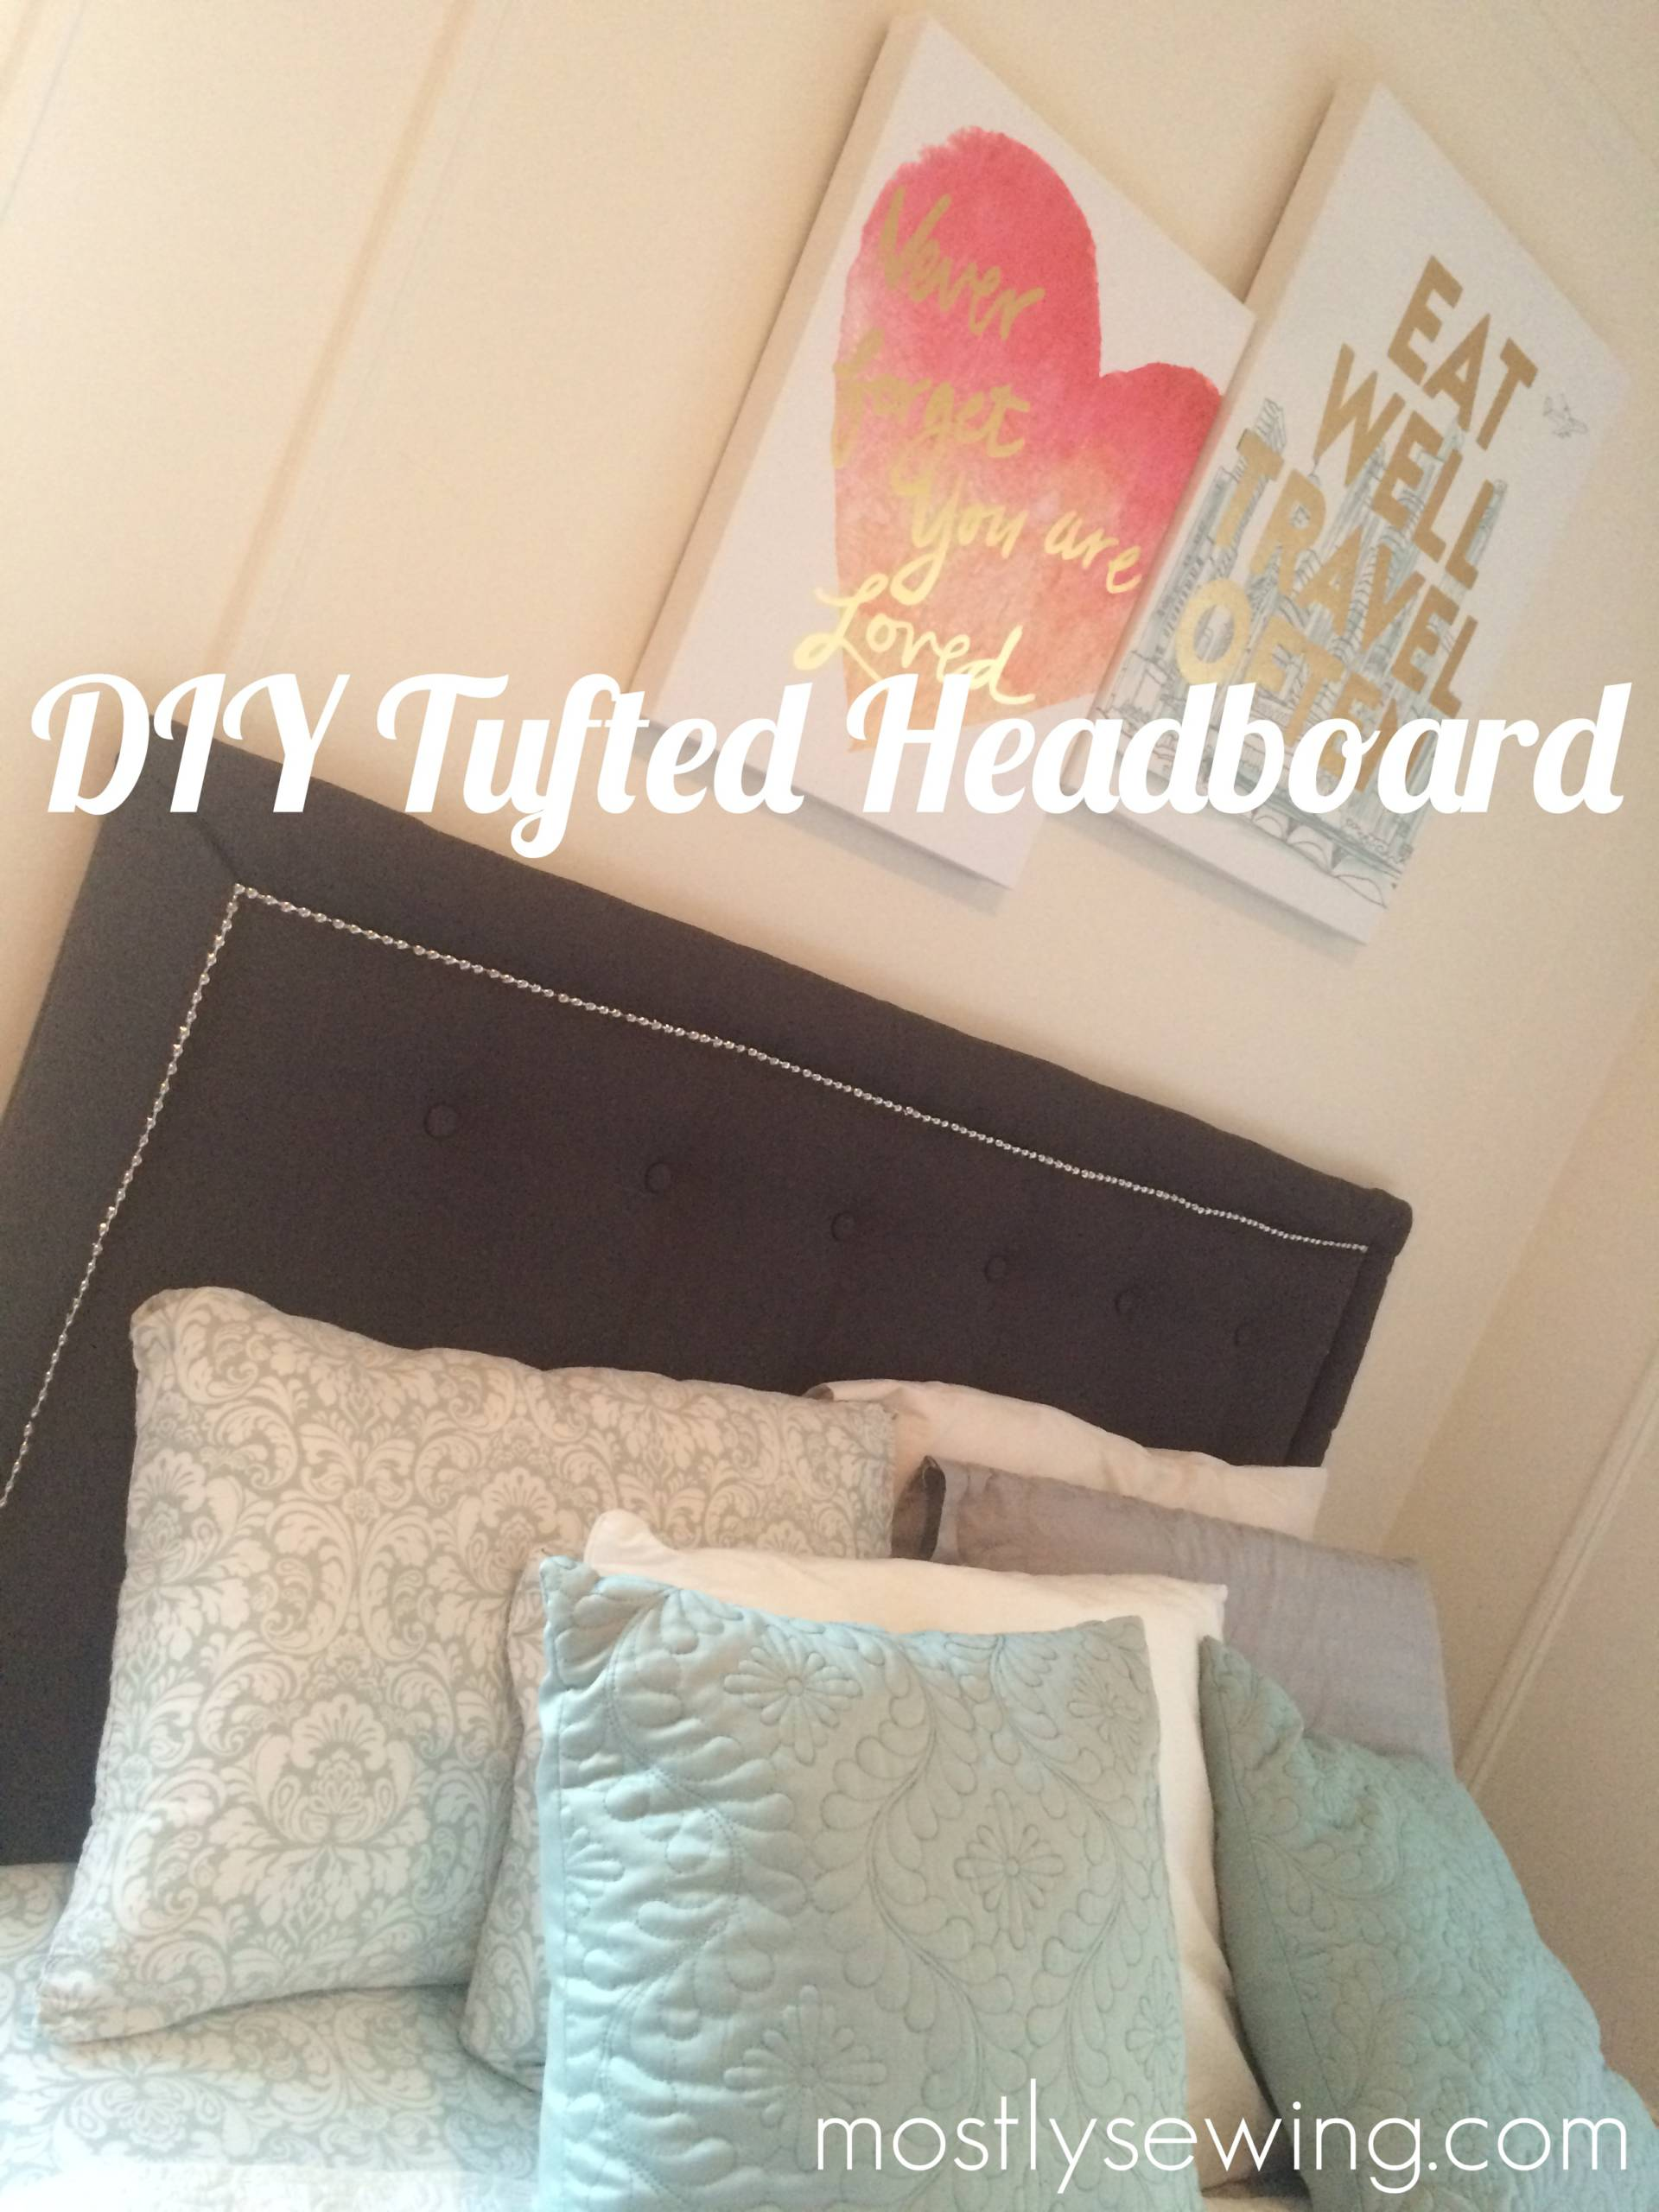 DIY tufted headboard on MostlySewing.com